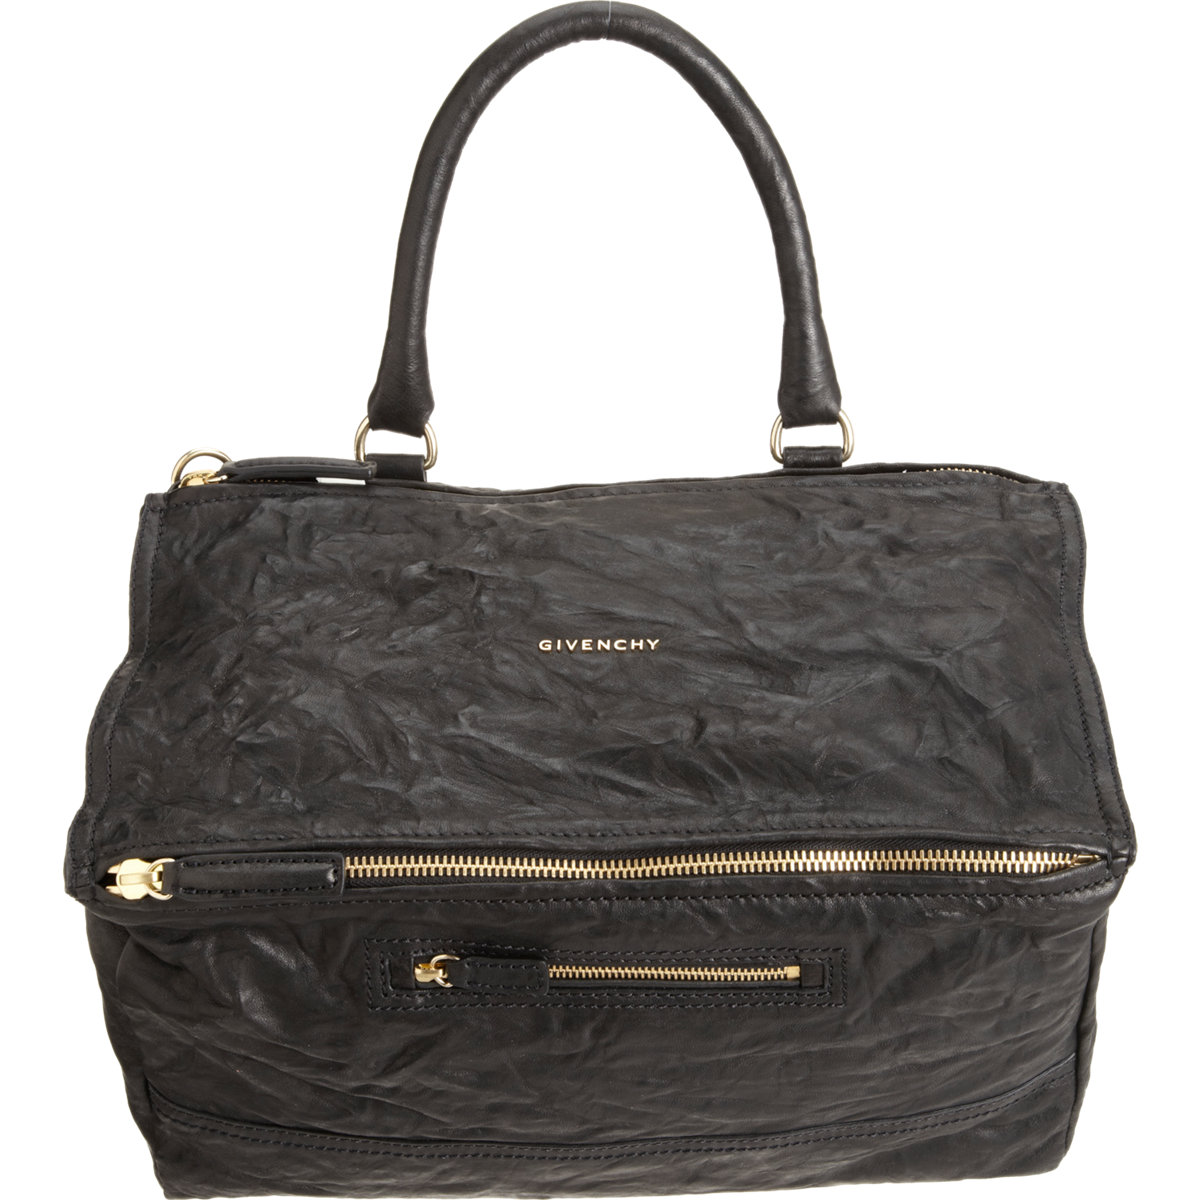 Givenchy Large Pepe Pandora Messenger at Barneys.com